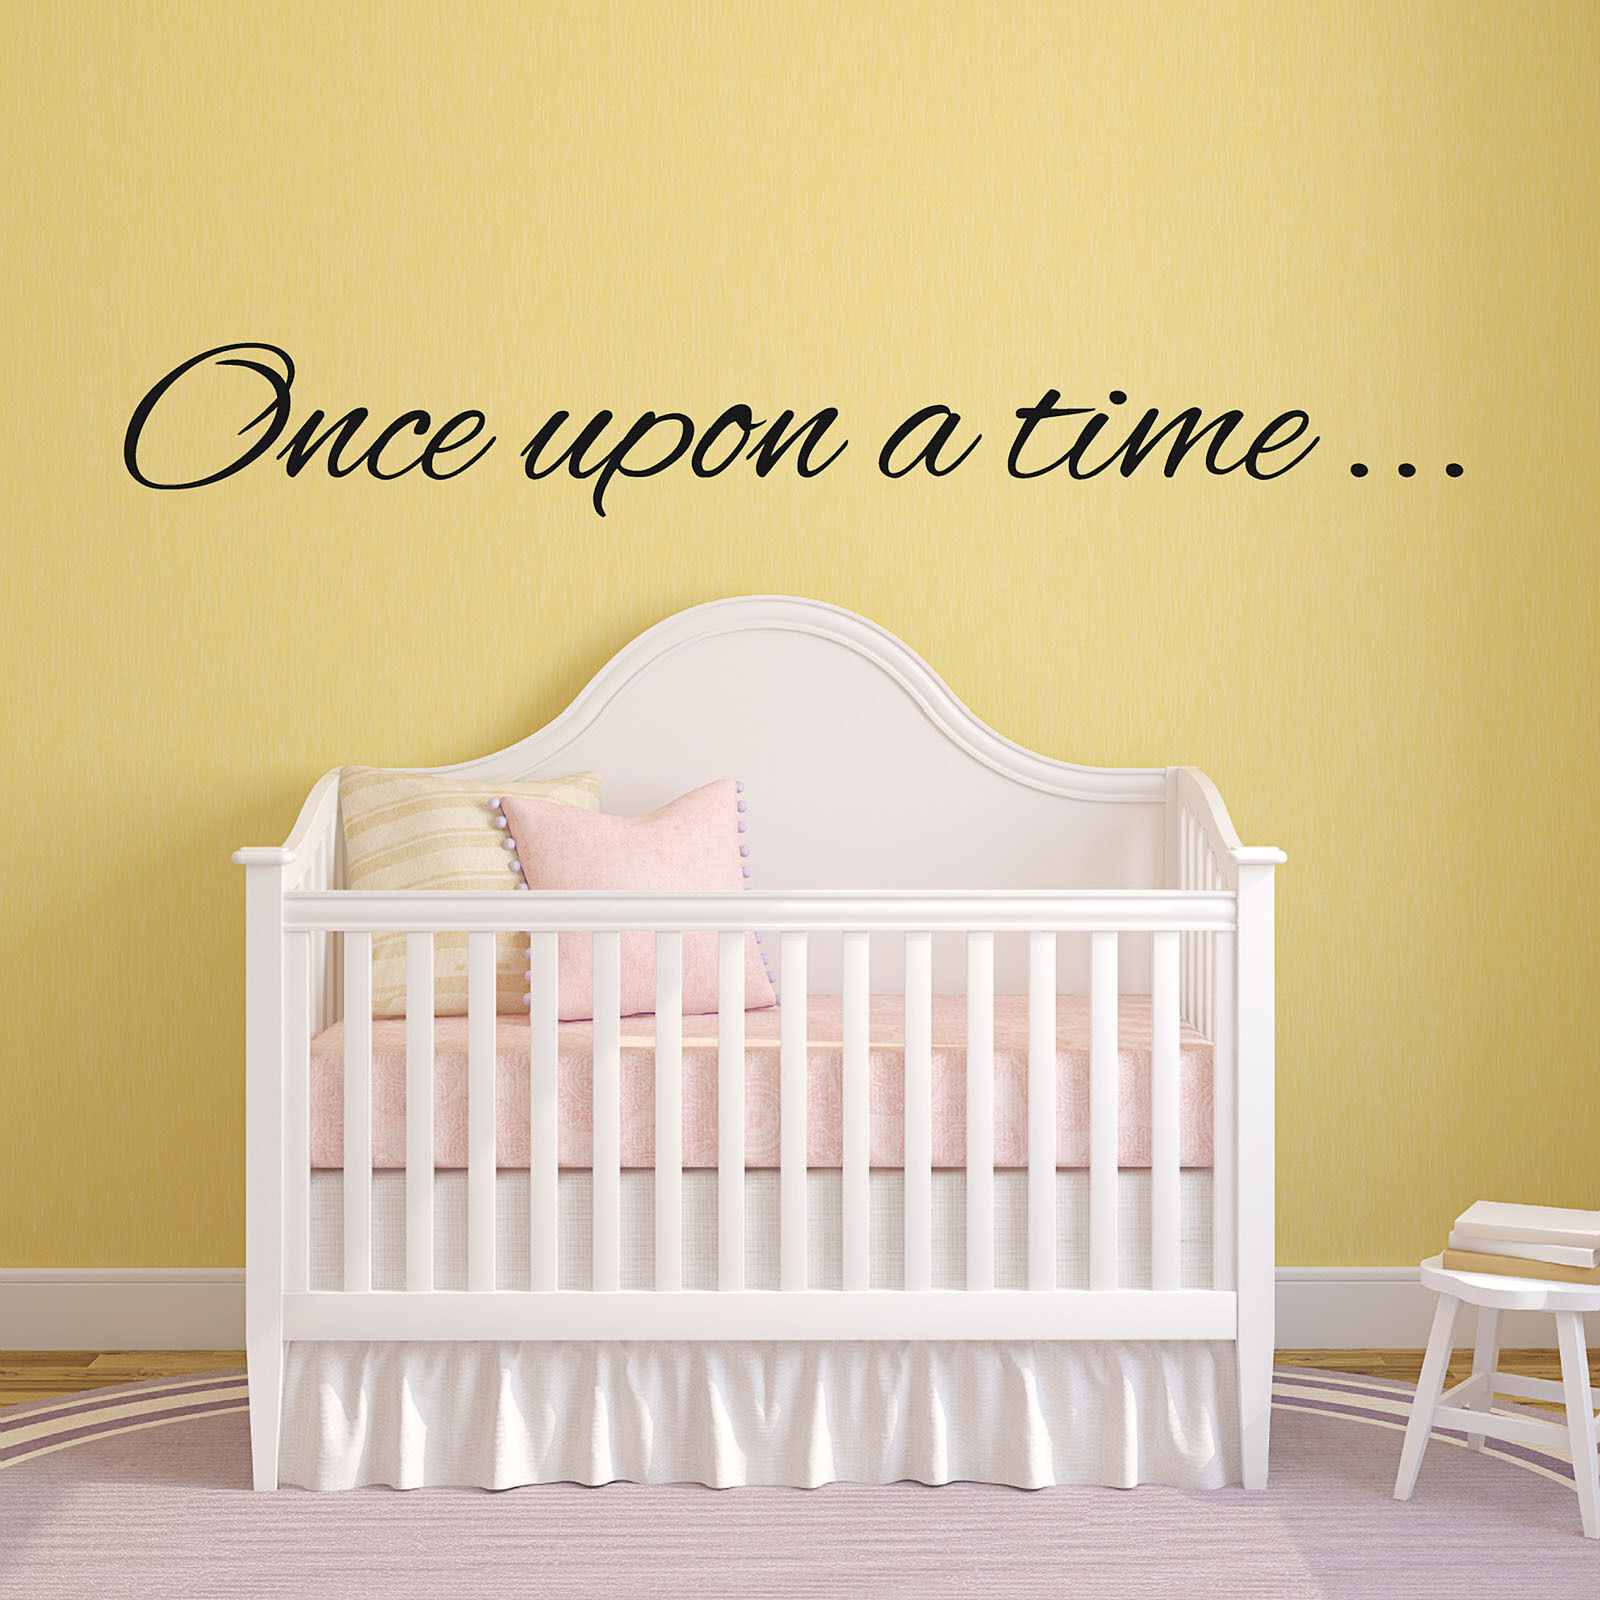 Walls Decoration , Nursery Decoration & Furniture , Baby